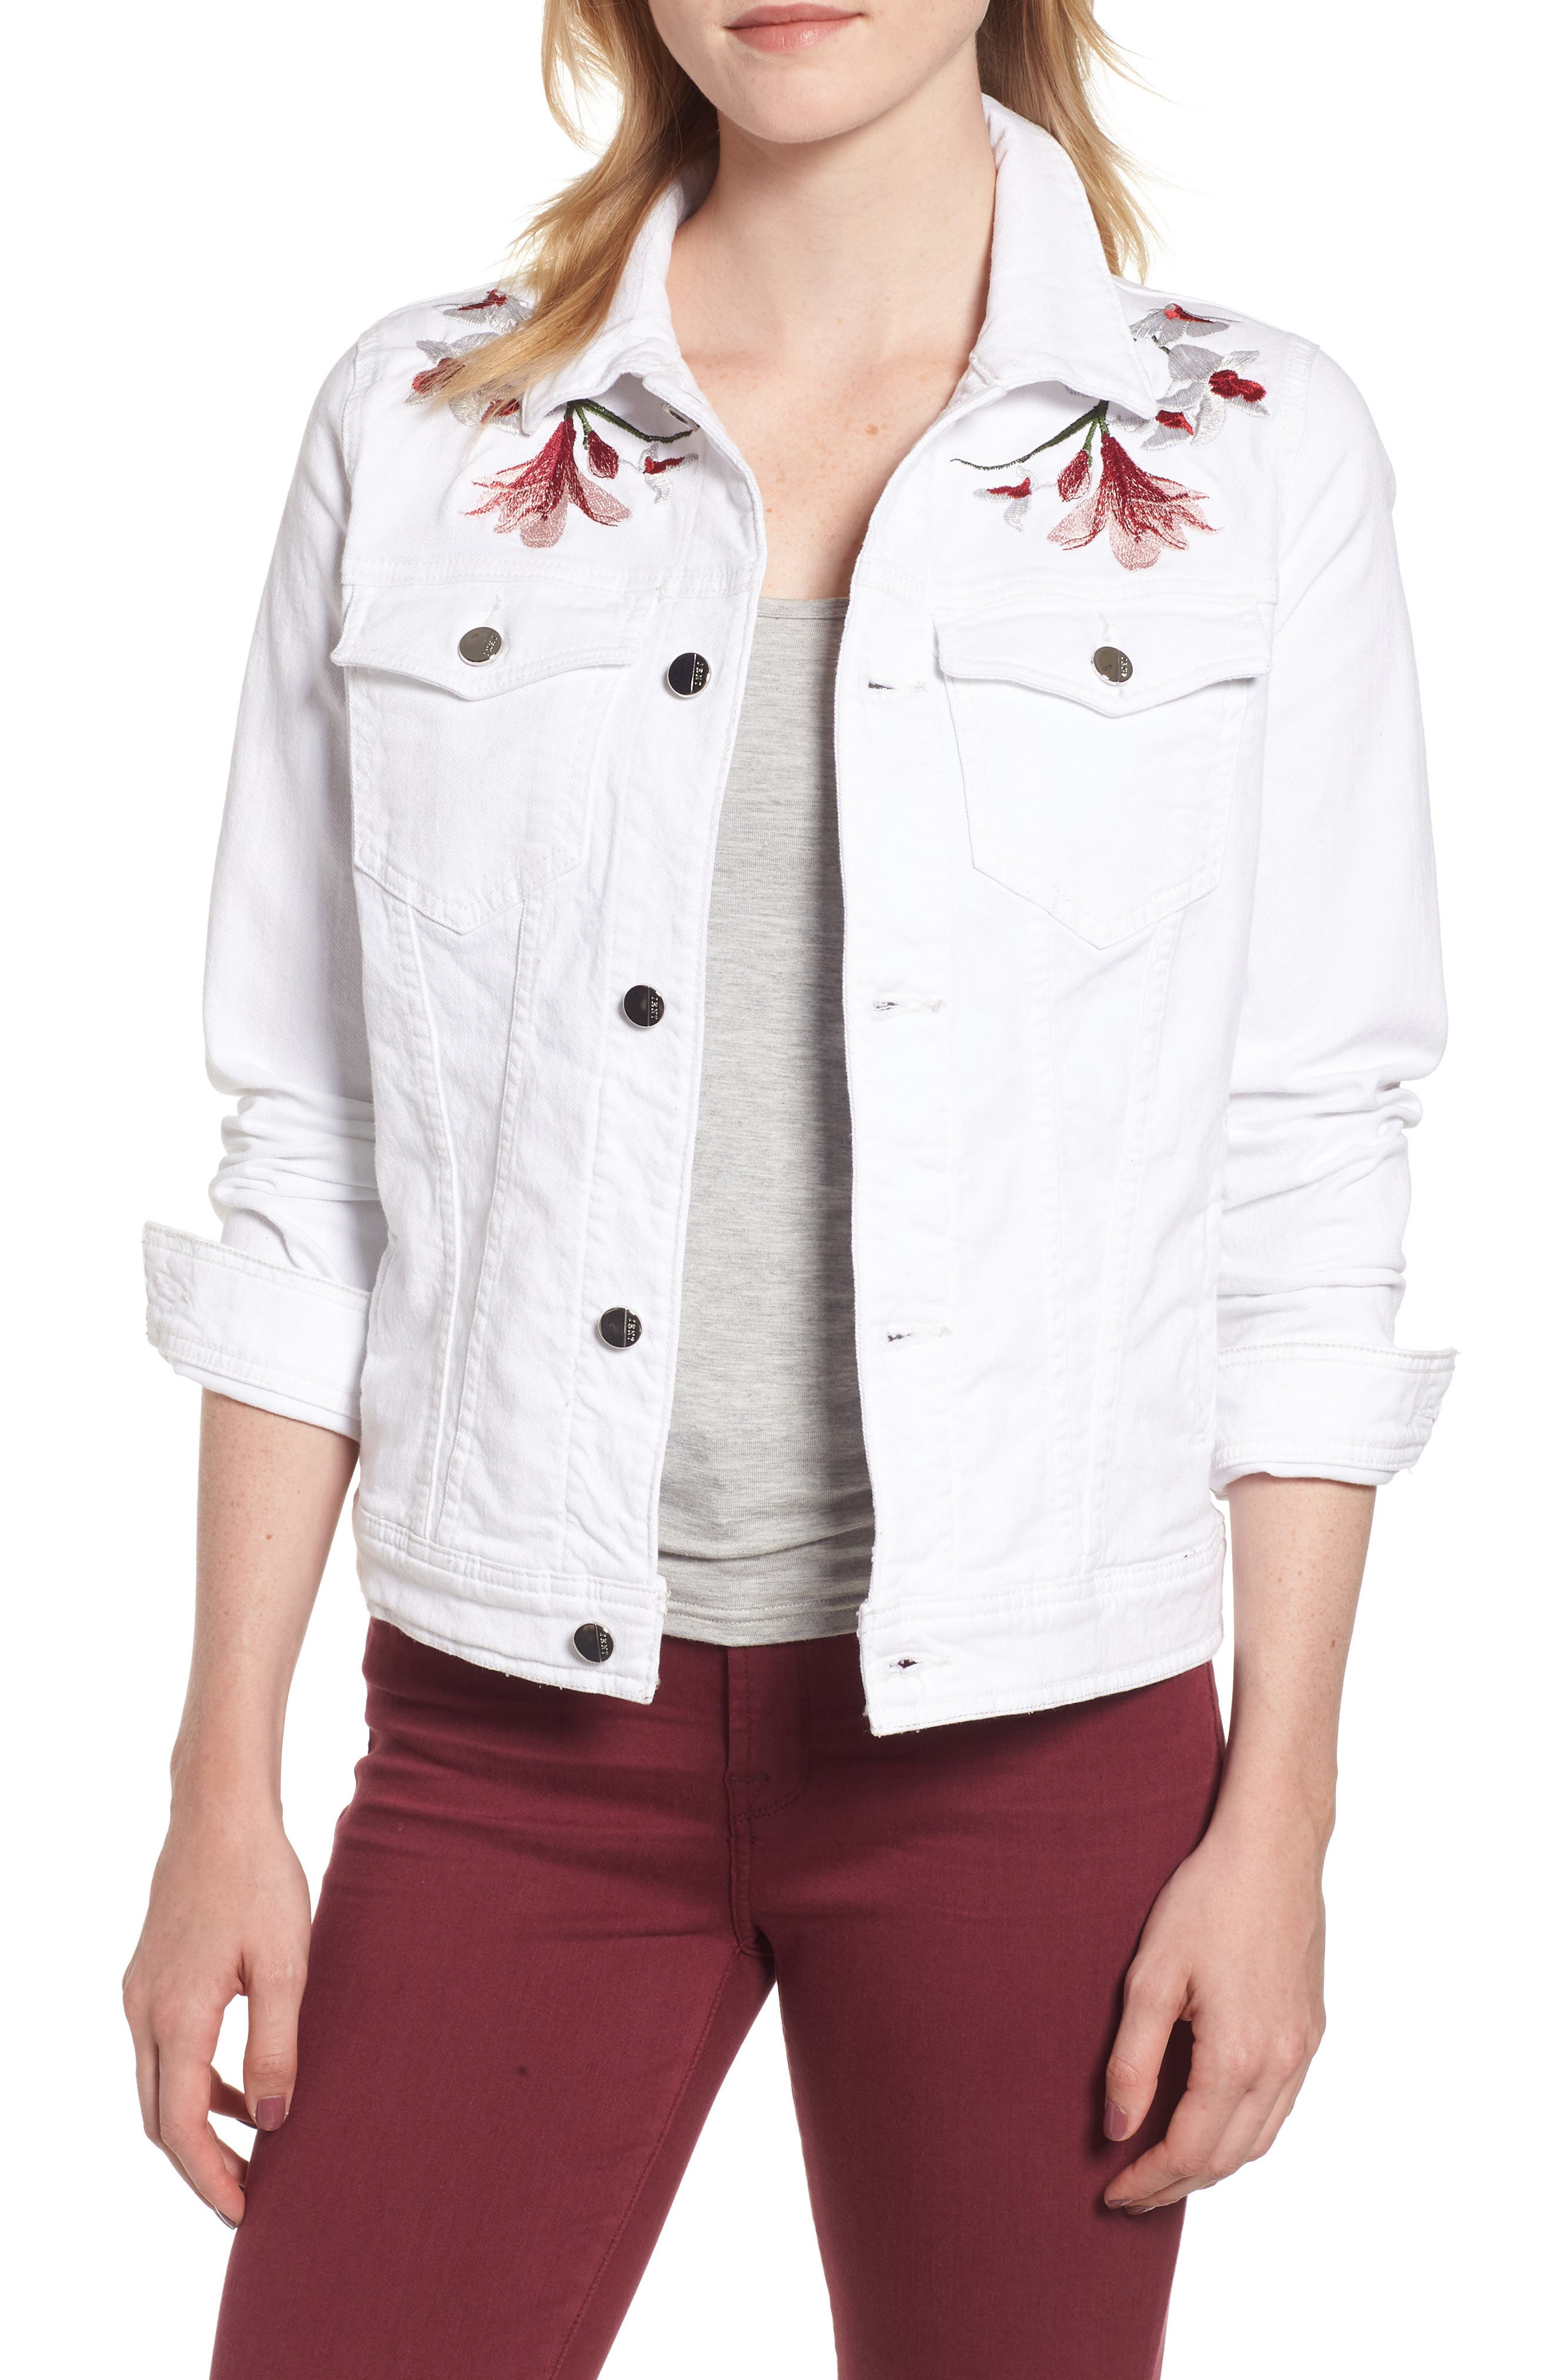 JEN7 BY 7 FOR ALL MANKIND, Embroidered Denim Jacket, Main thumbnail 1, color, 102